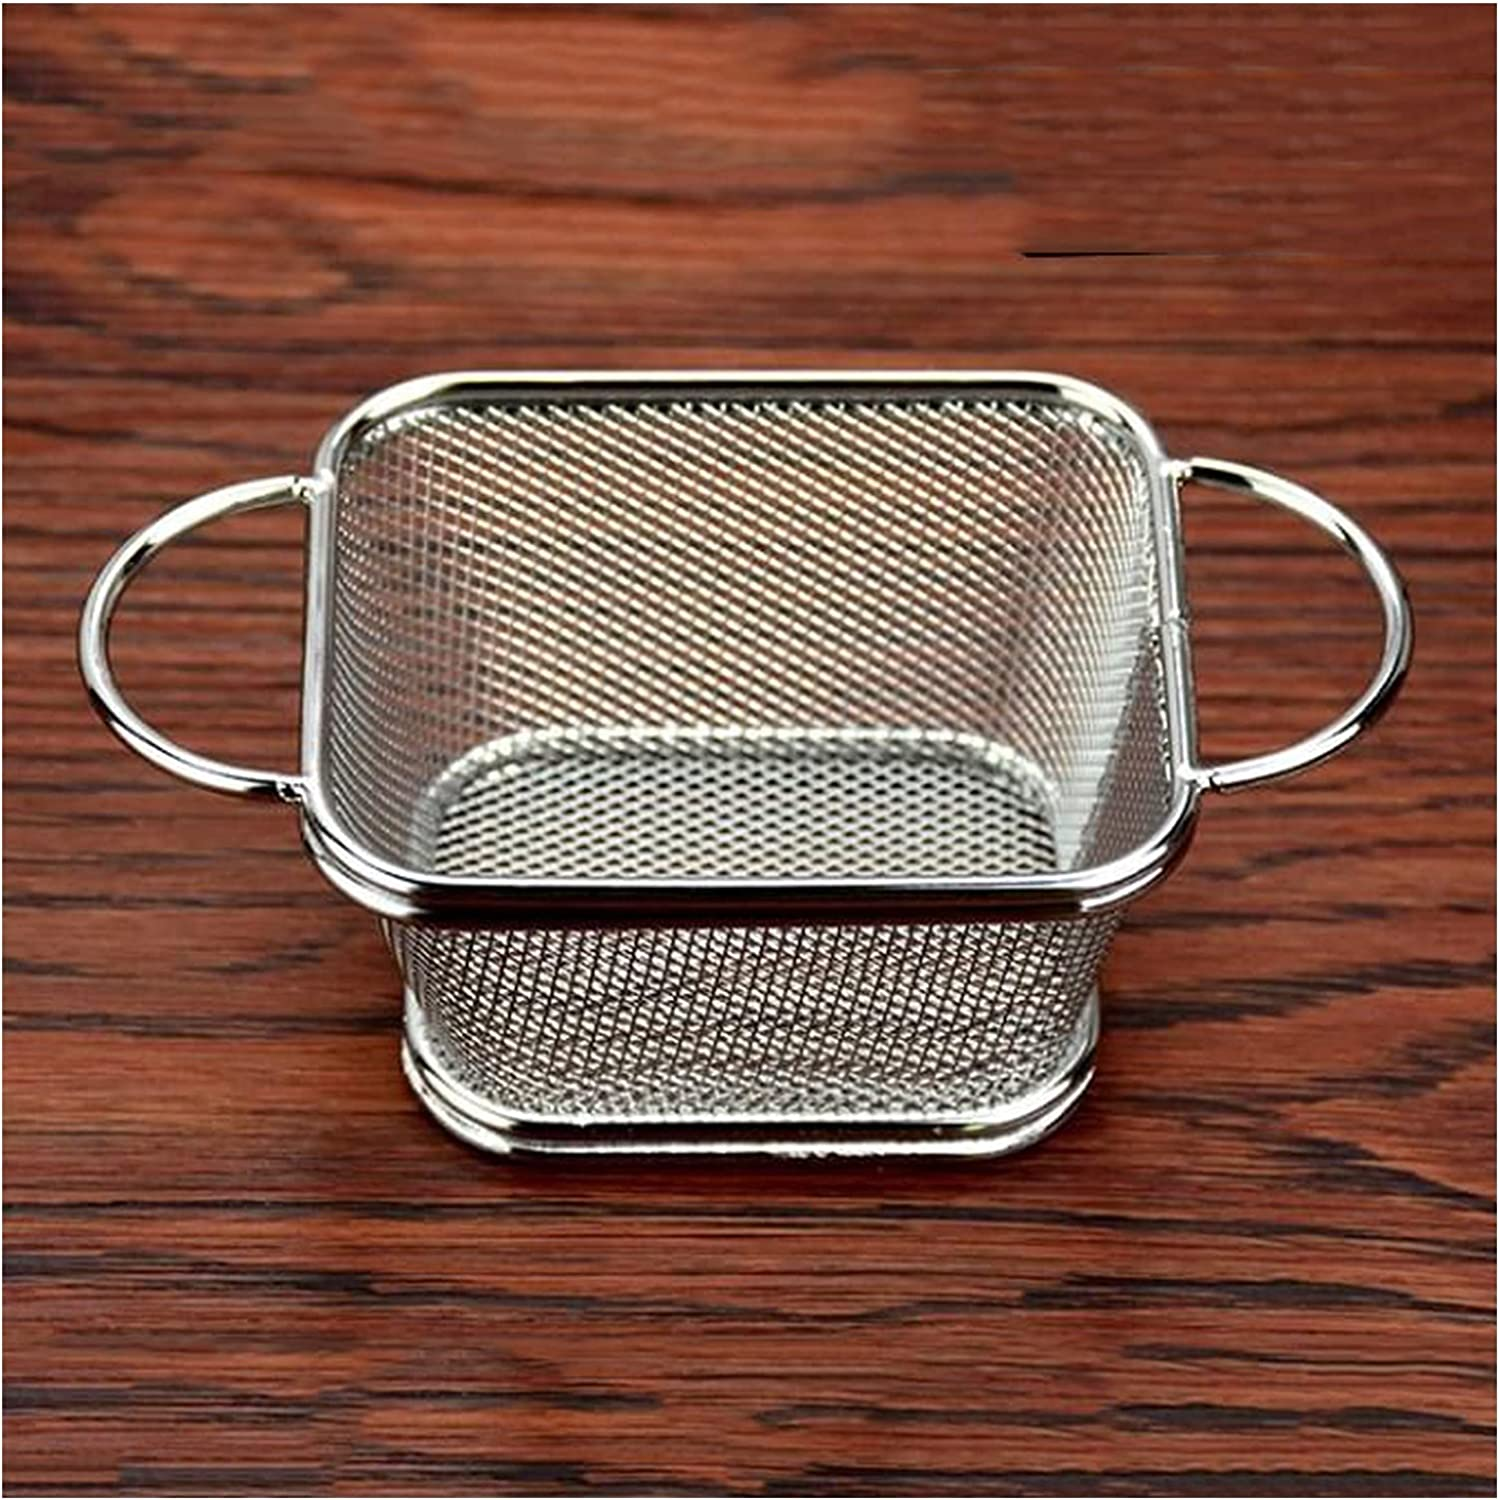 Fry Baskets Stainless Max 80% OFF Steel Basket Fries Regular discount Ba Household French